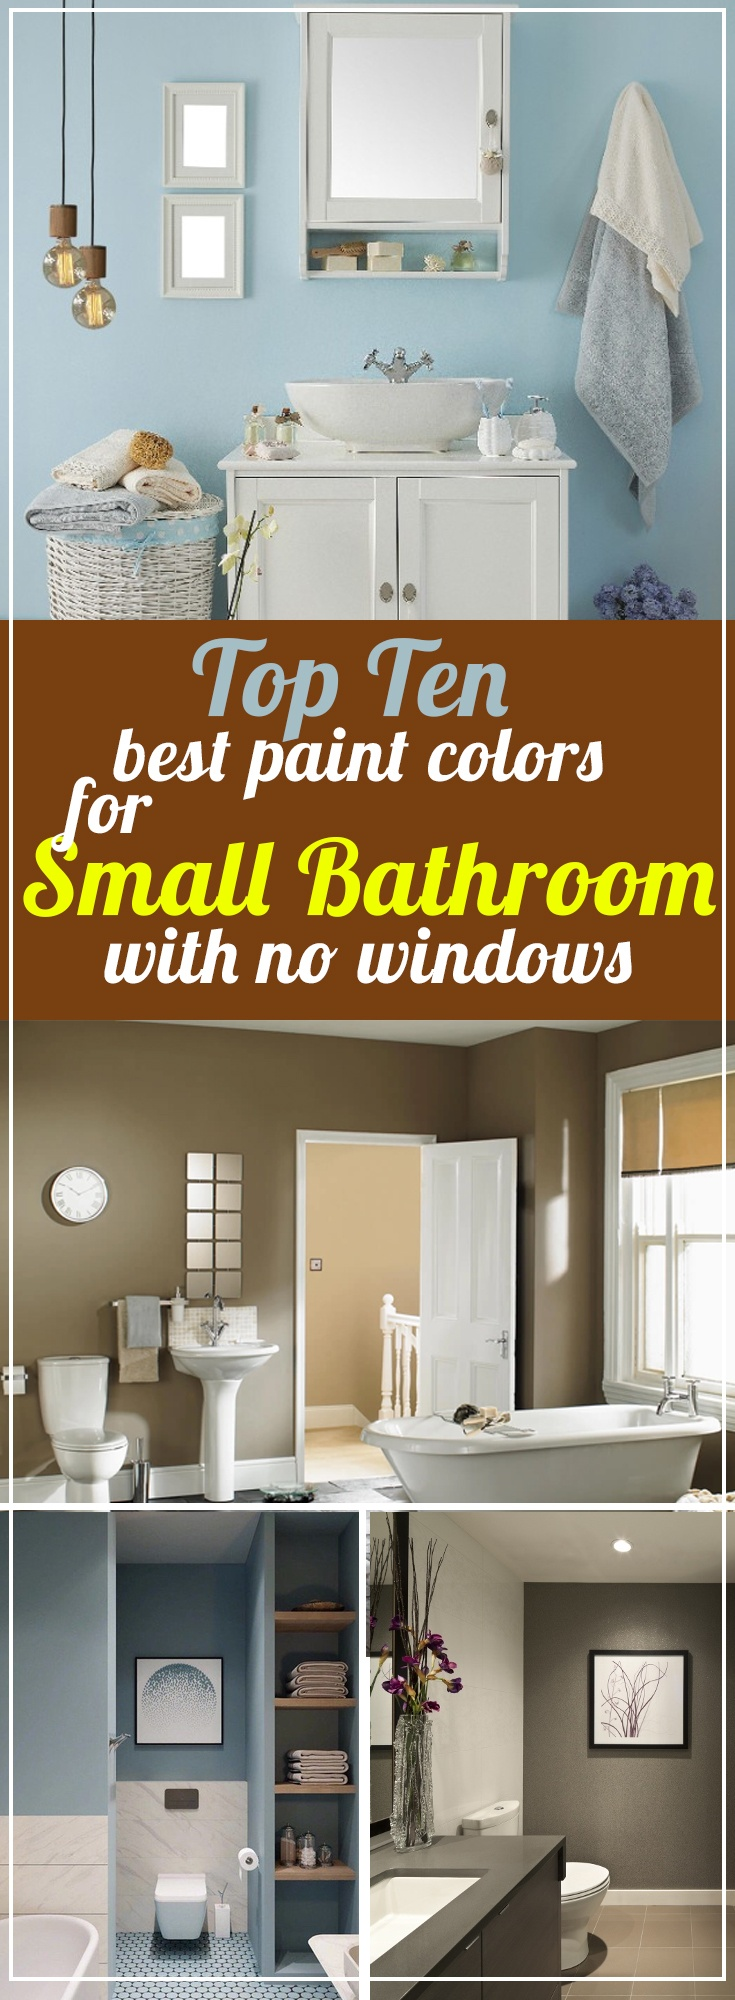 11 Best Paint Colors For Small Bathroom With No Windows